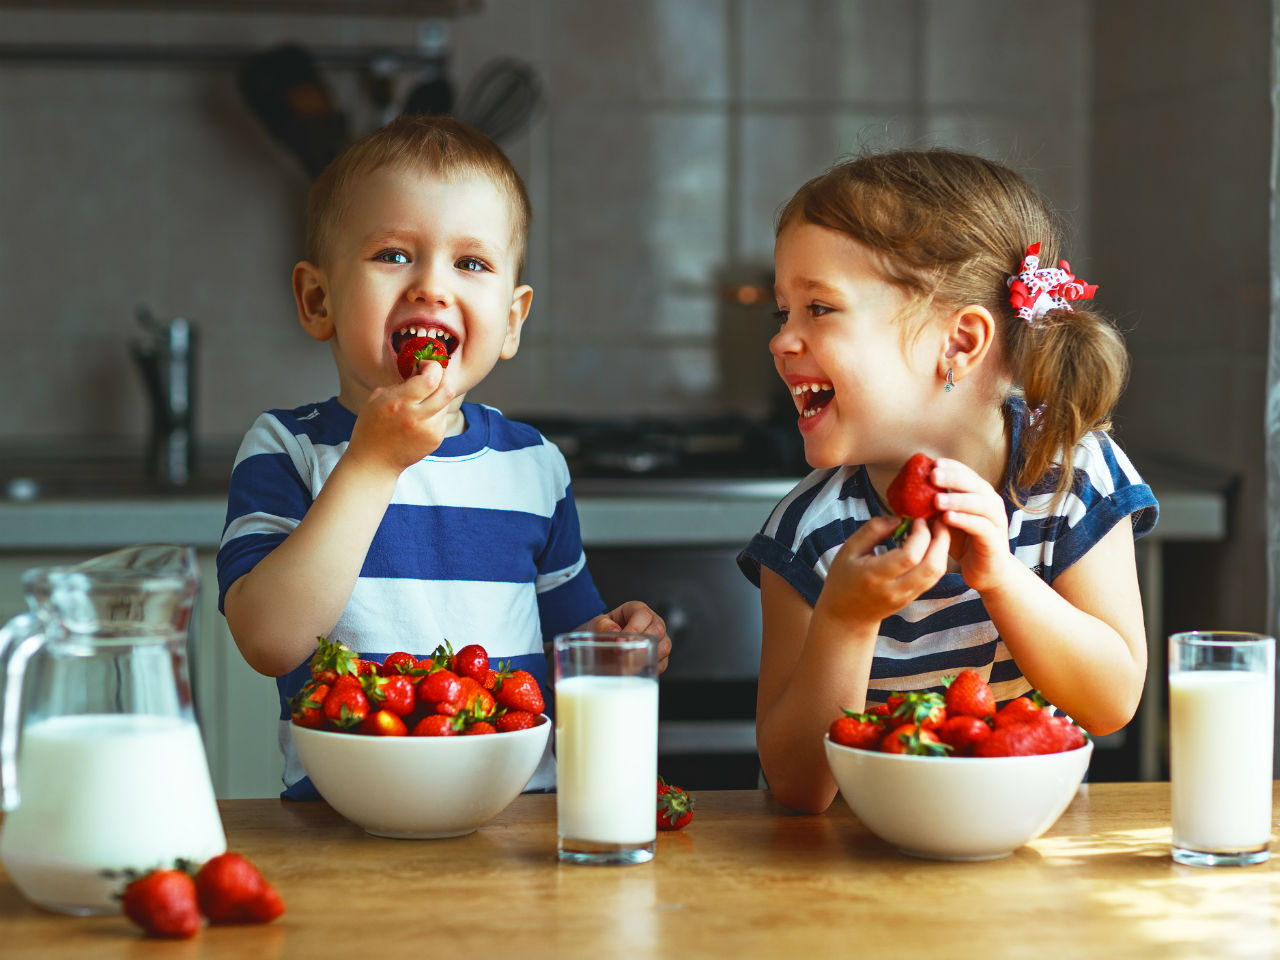 Two kids eating strawberries and milk